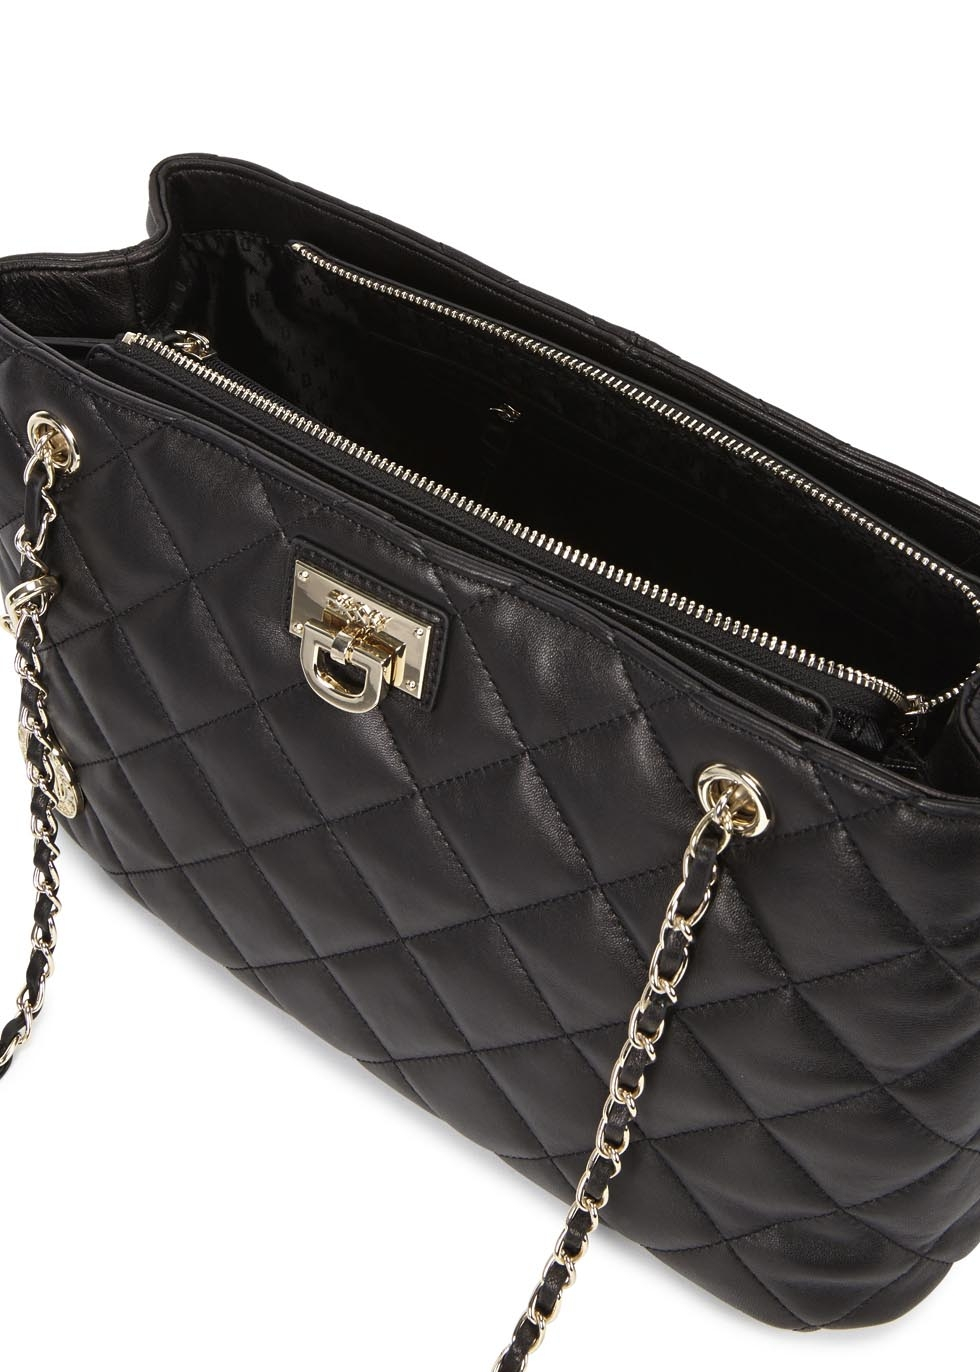 Dkny Gansevoort Black Quilted Shoulder Bag Lyst